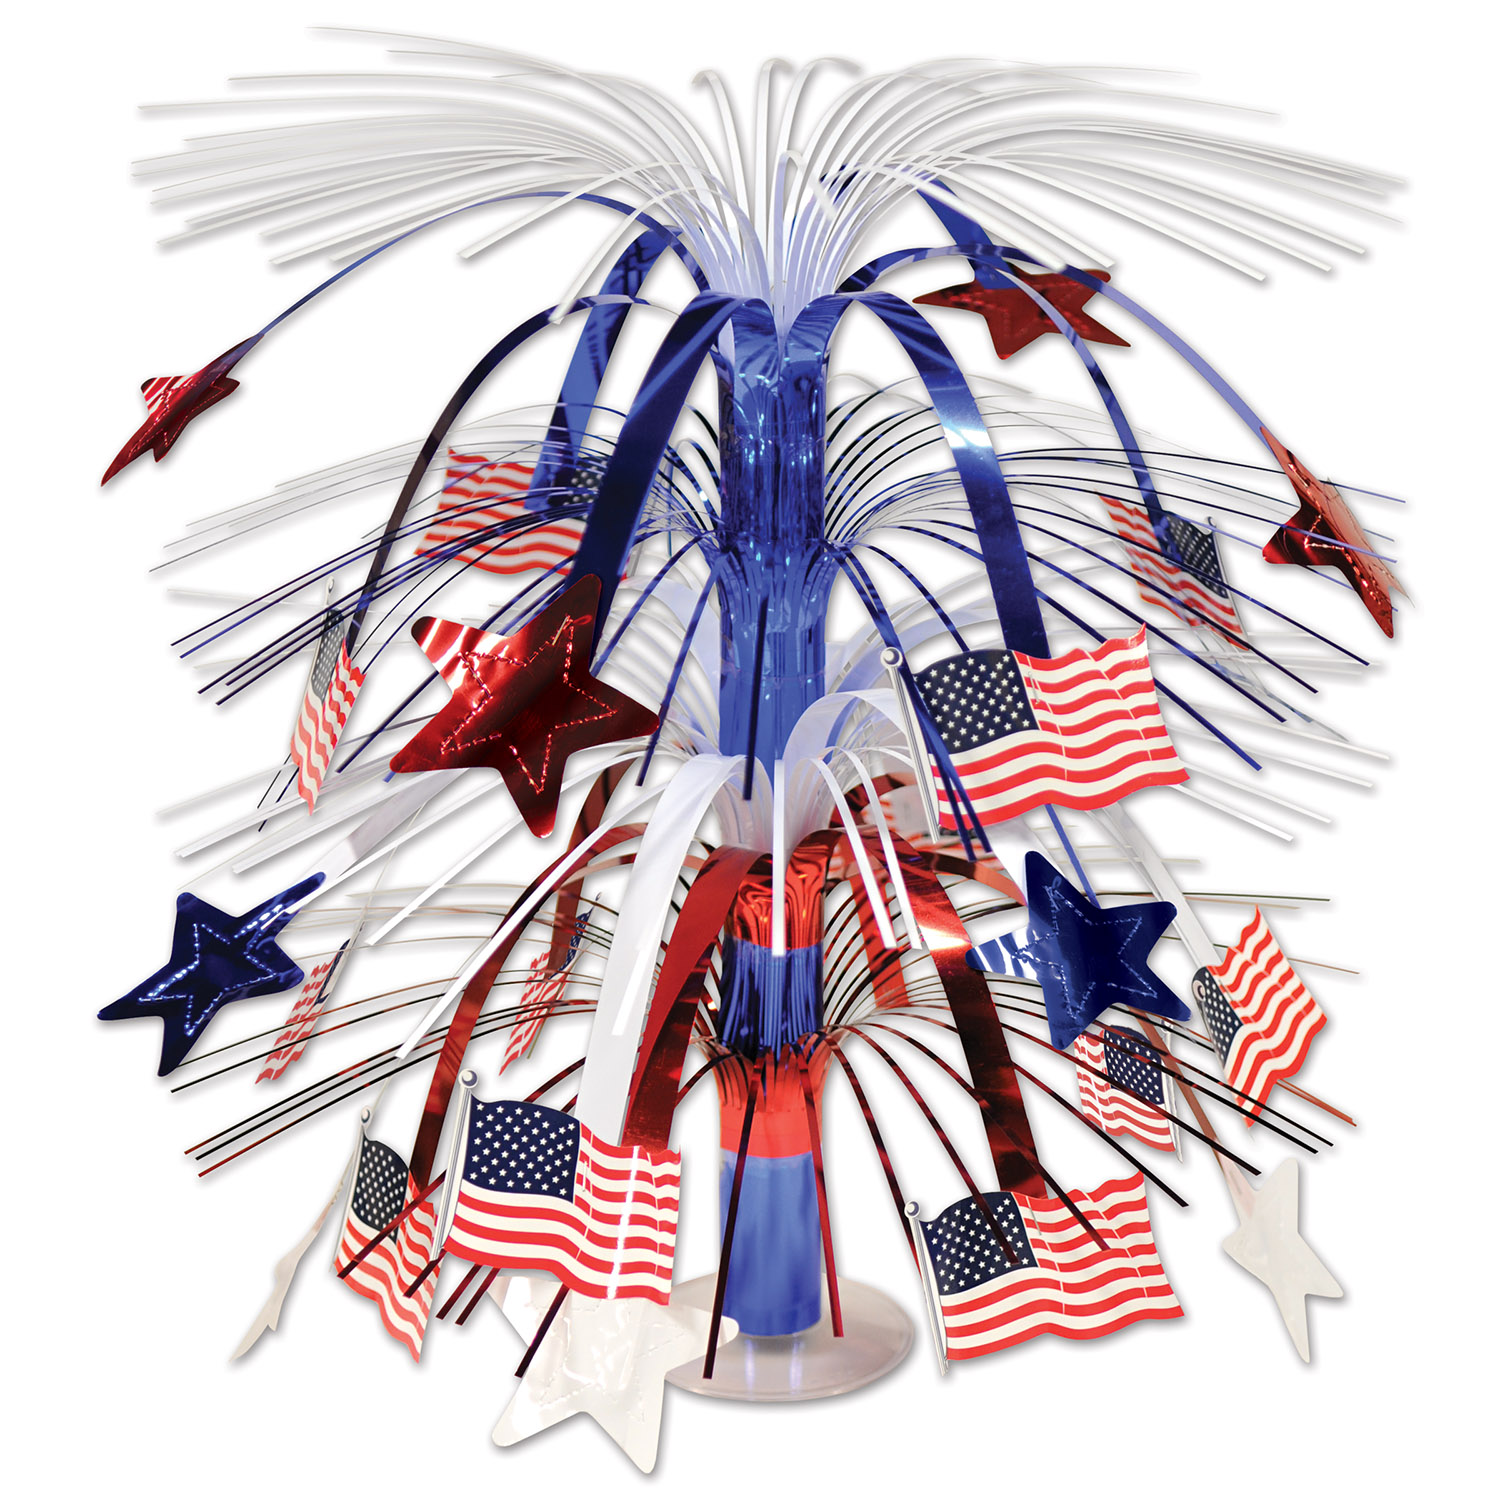 Patriotic centerpiece with red white and blue stars with american flags hanging off of the metallic centerpiece